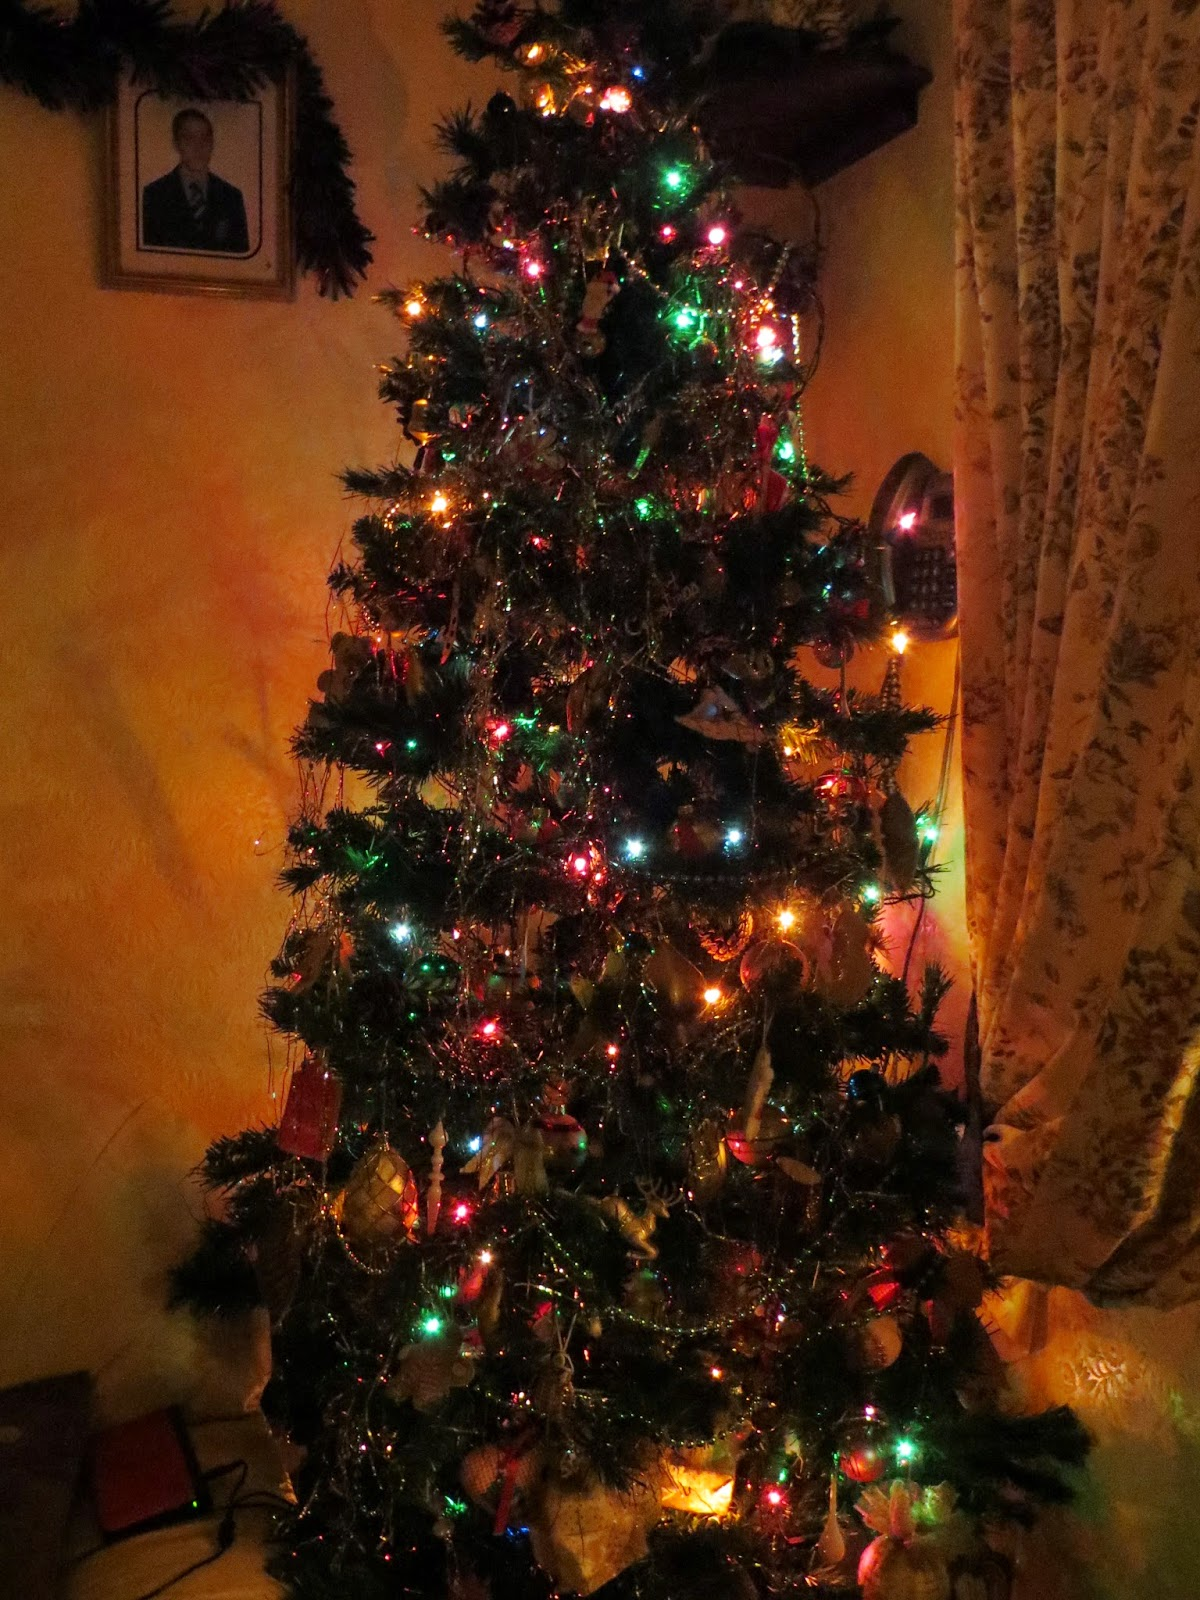 The tree all decorated and twinkly!.